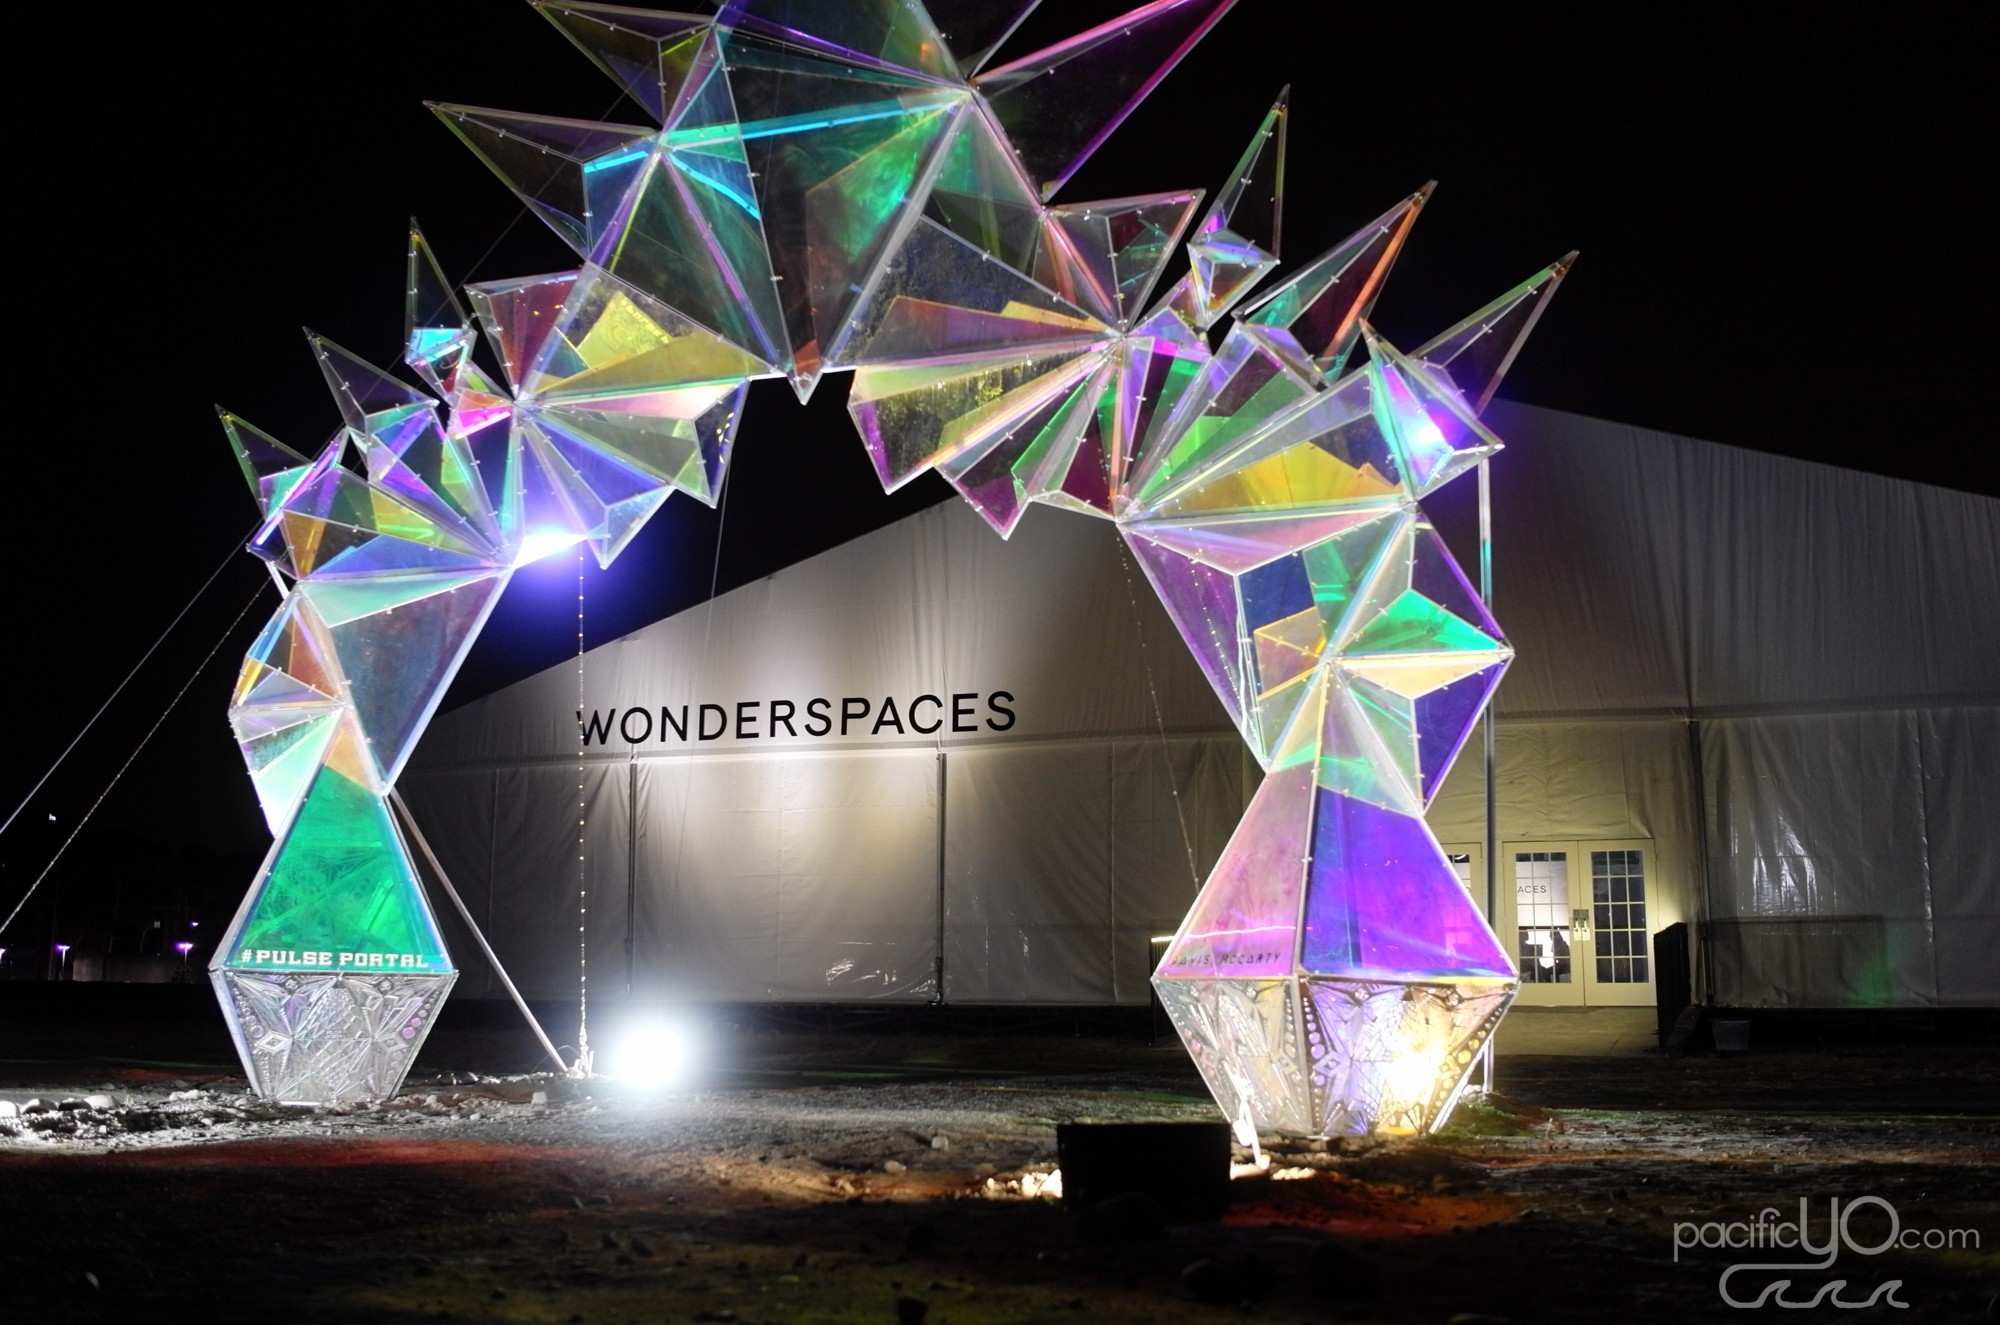 Wonderspaces San Diego - 00 - Pulse Portal - Davis McCarty.JPG